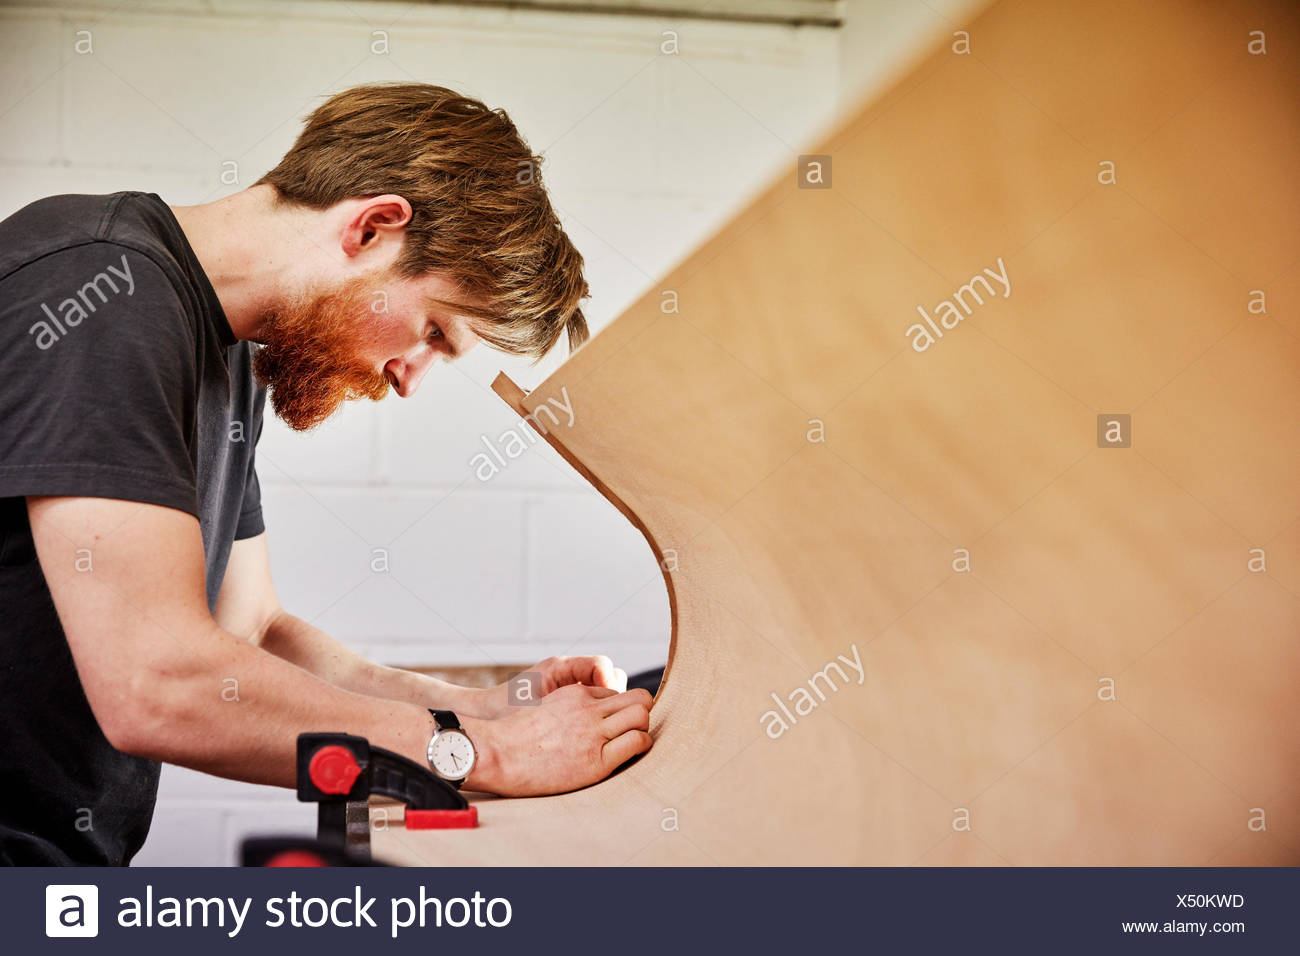 A  man using a tool on the curved cut out edge of a piece of wood - Stock Image